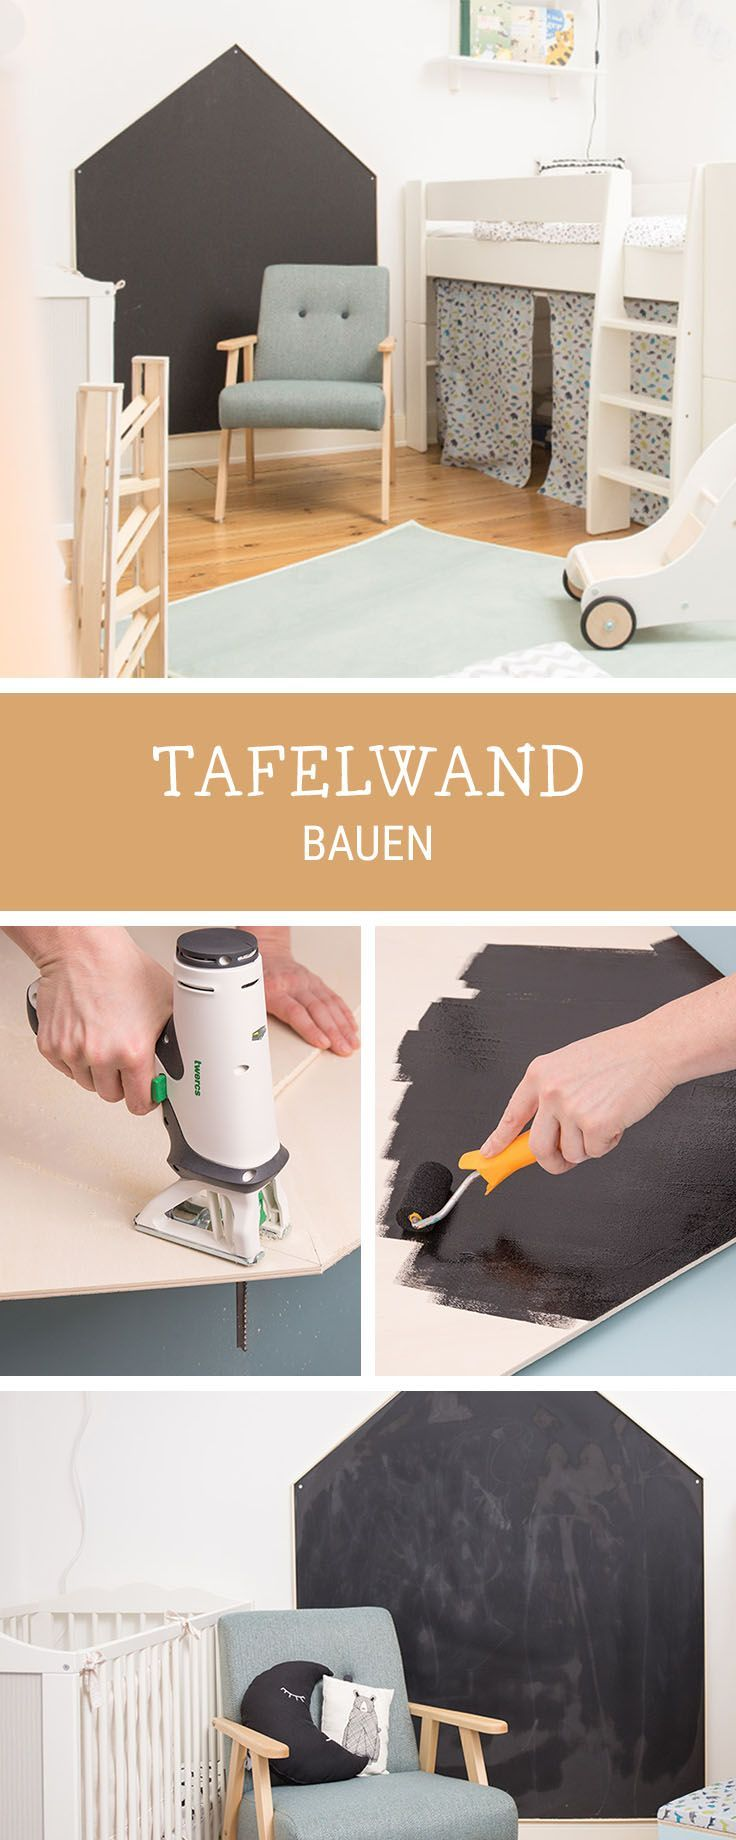 diy f rs kinderzimmer tafelwand zum beschreiben bauen how to build a panel wall for the. Black Bedroom Furniture Sets. Home Design Ideas